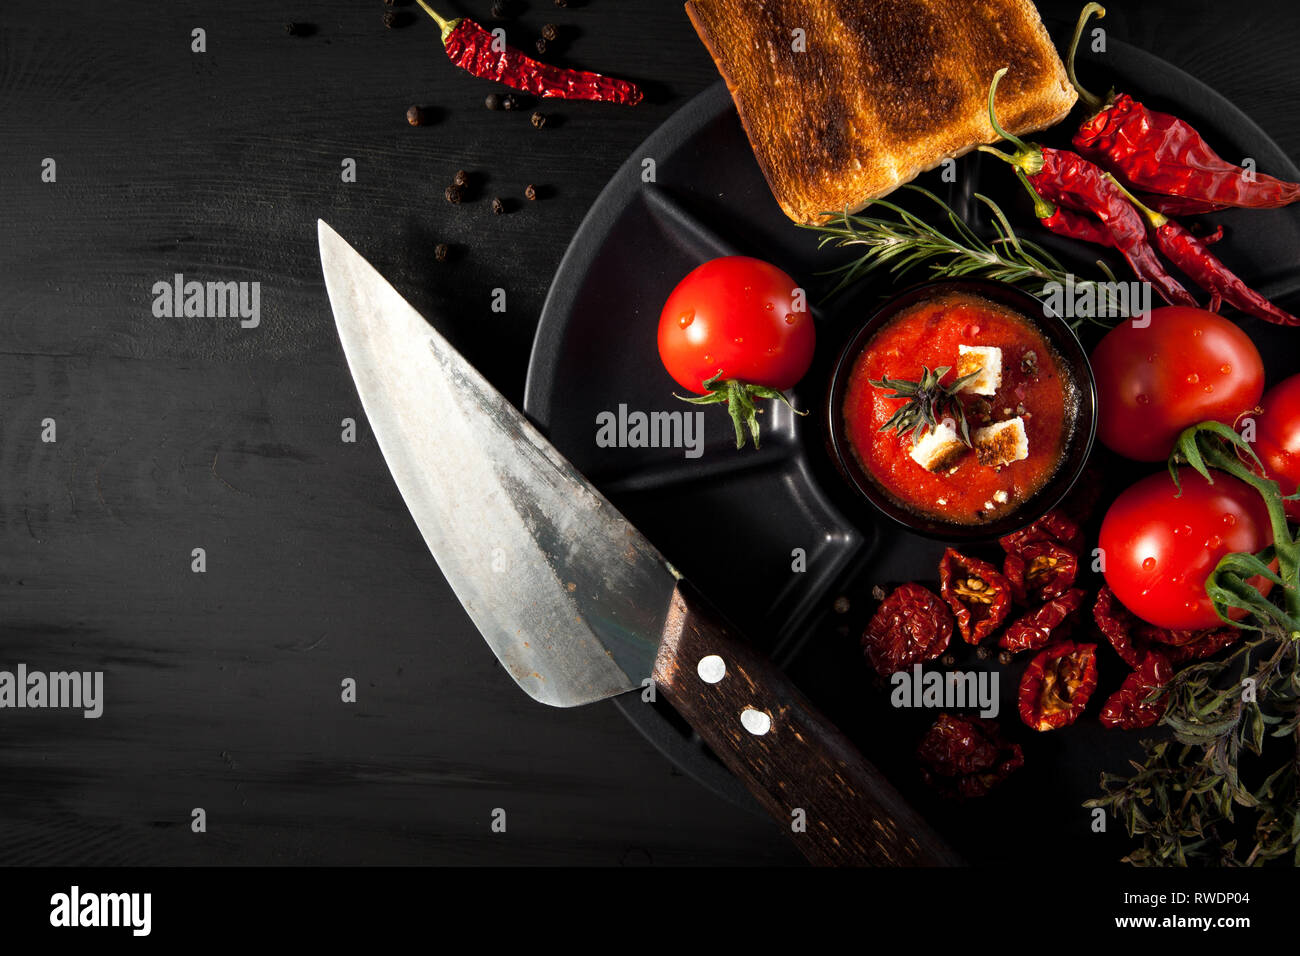 Tomato soup with chili and vegetables. Healthy food. On a black wooden background. Top view. Copy space for your text. Stock Photo